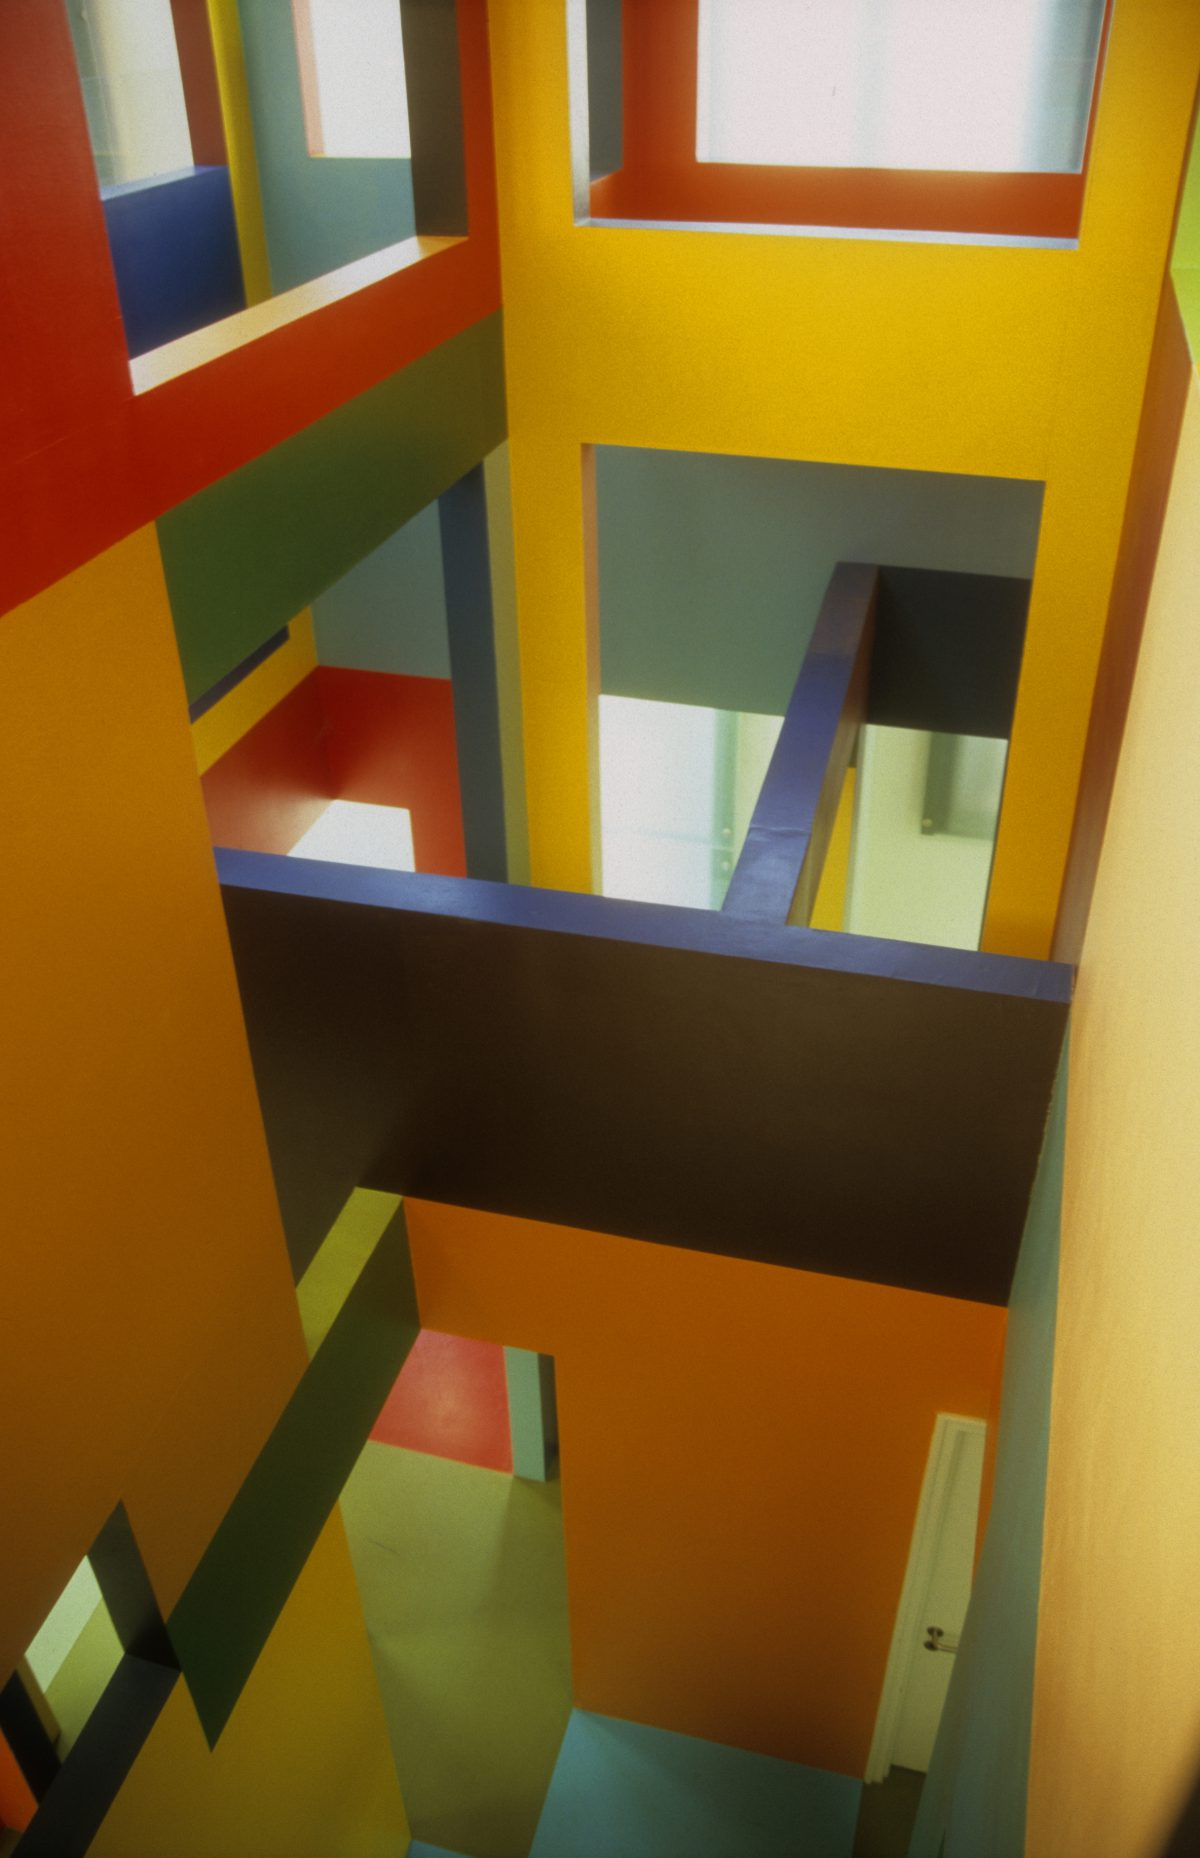 Dream house - Dick Bruna House, art, building, design, color